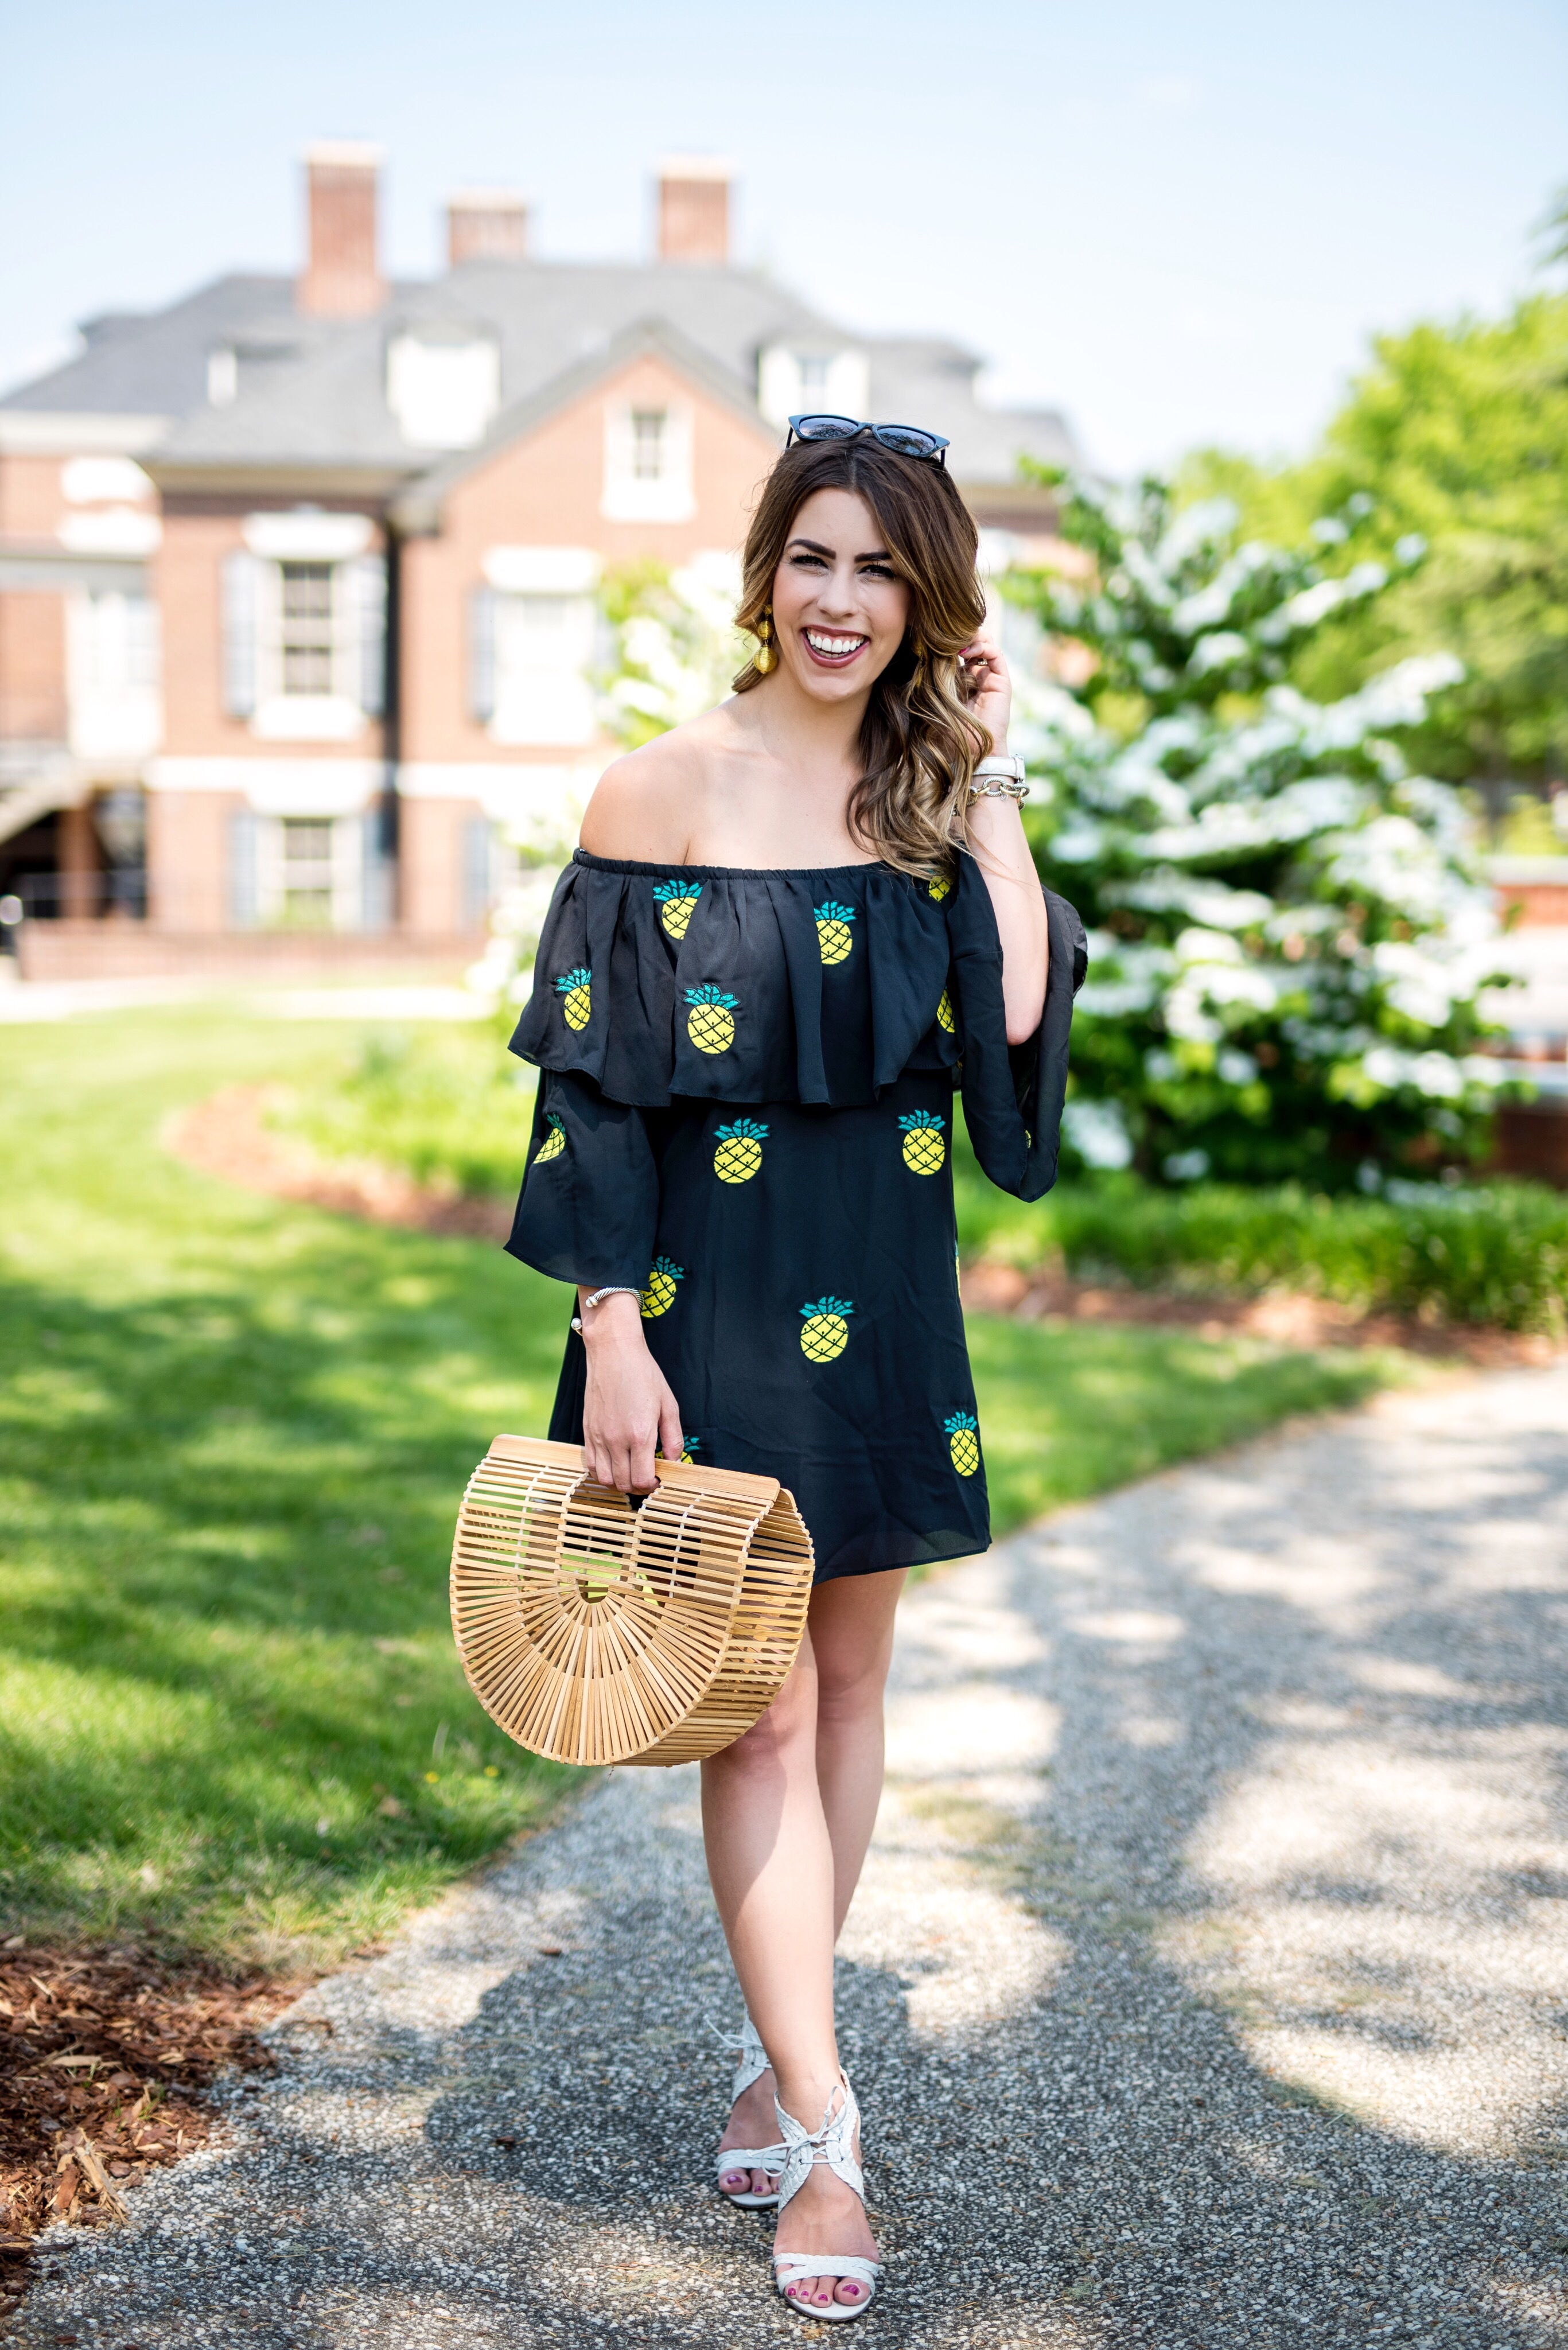 pineapple dress black pineapple dress off the shoulder dress off the shoulder fruit dress basket purse passion for pineapples vava by joy han pineapple dress spring fashion spring outfit idea charlotte fashion blogger charlotte nc blogger